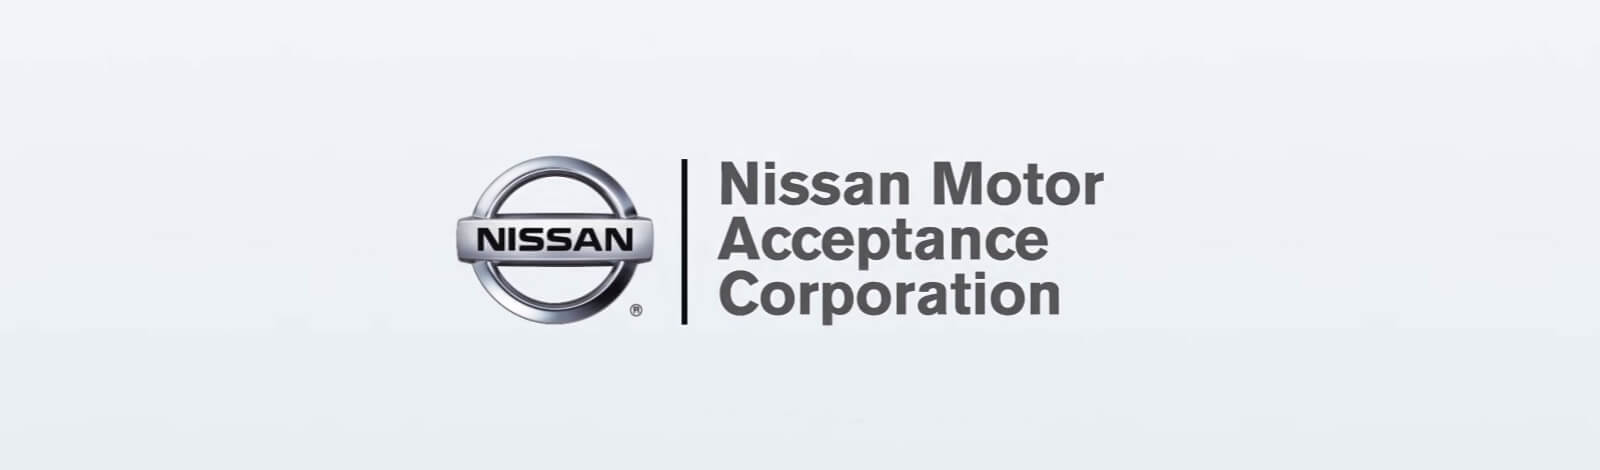 Massive dealer compensation goautonews premium for Nissan motor acceptance corporation